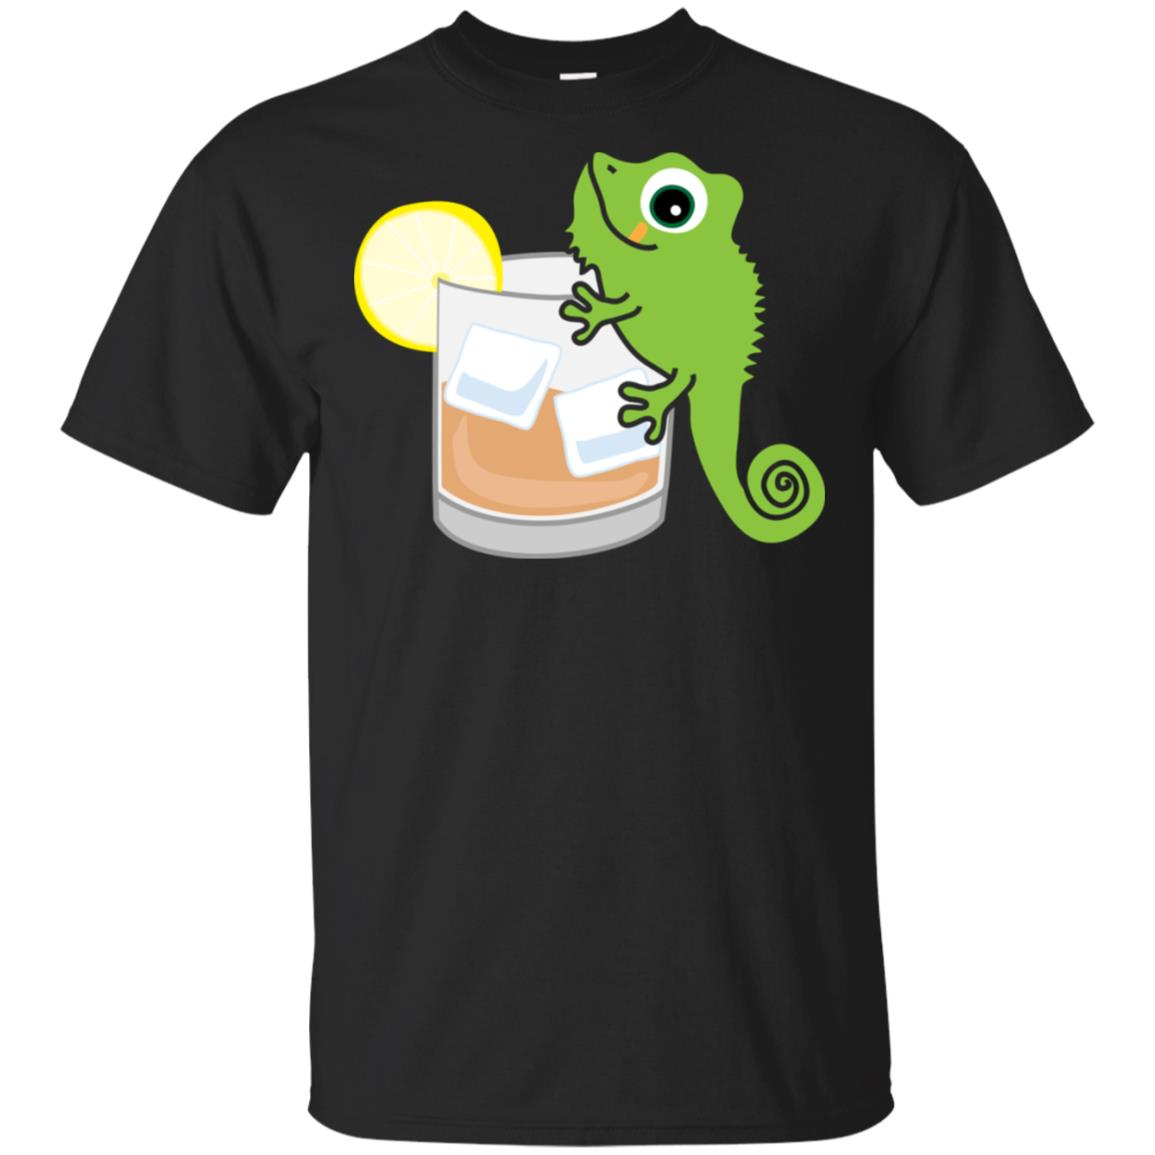 Funny Drink Reptile on the Rocks Party Unisex Short Sleeve